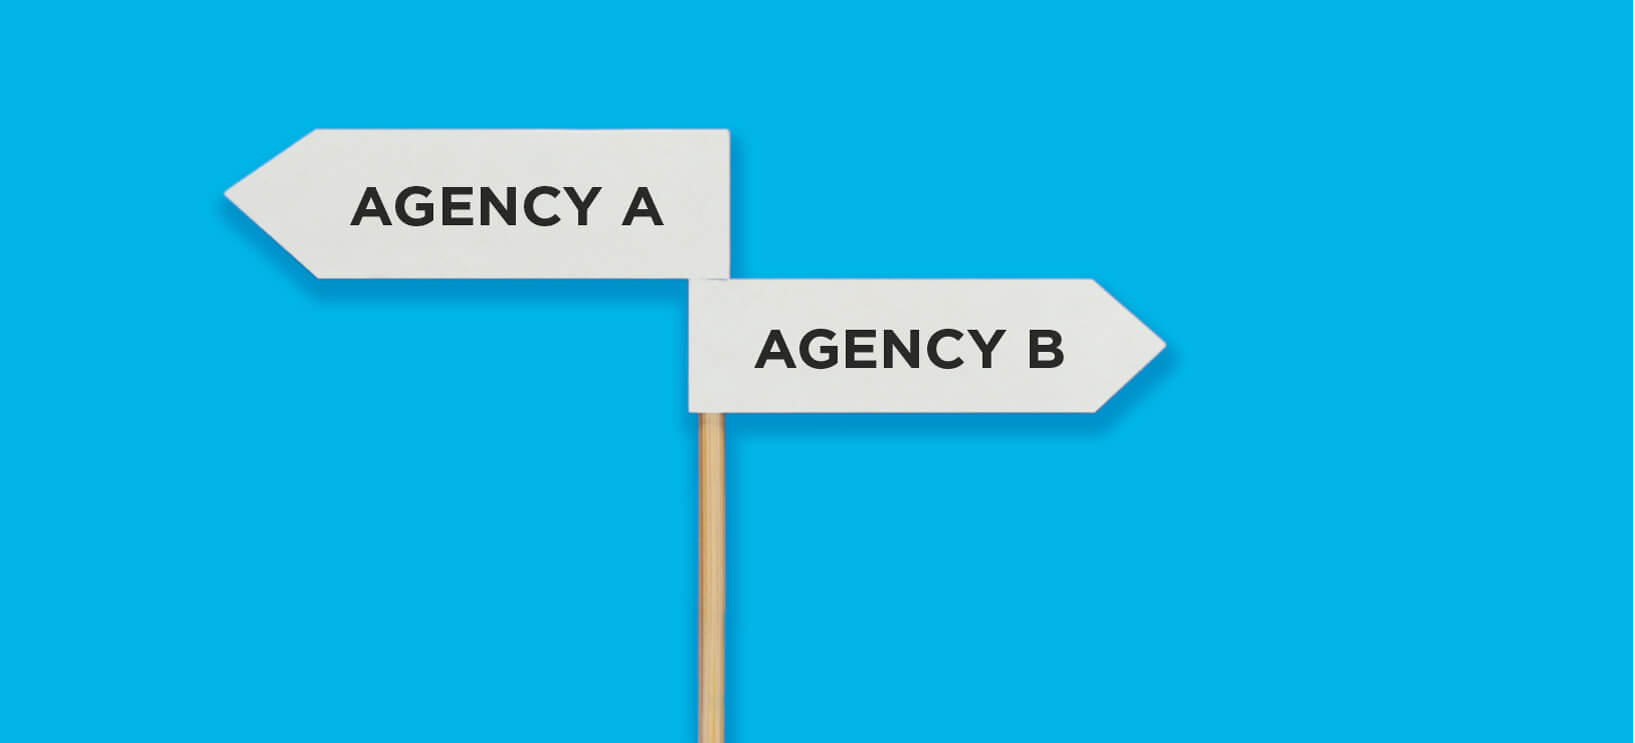 Top Questions to Ask When Evaluating Web Design Agencies for a B2B Site